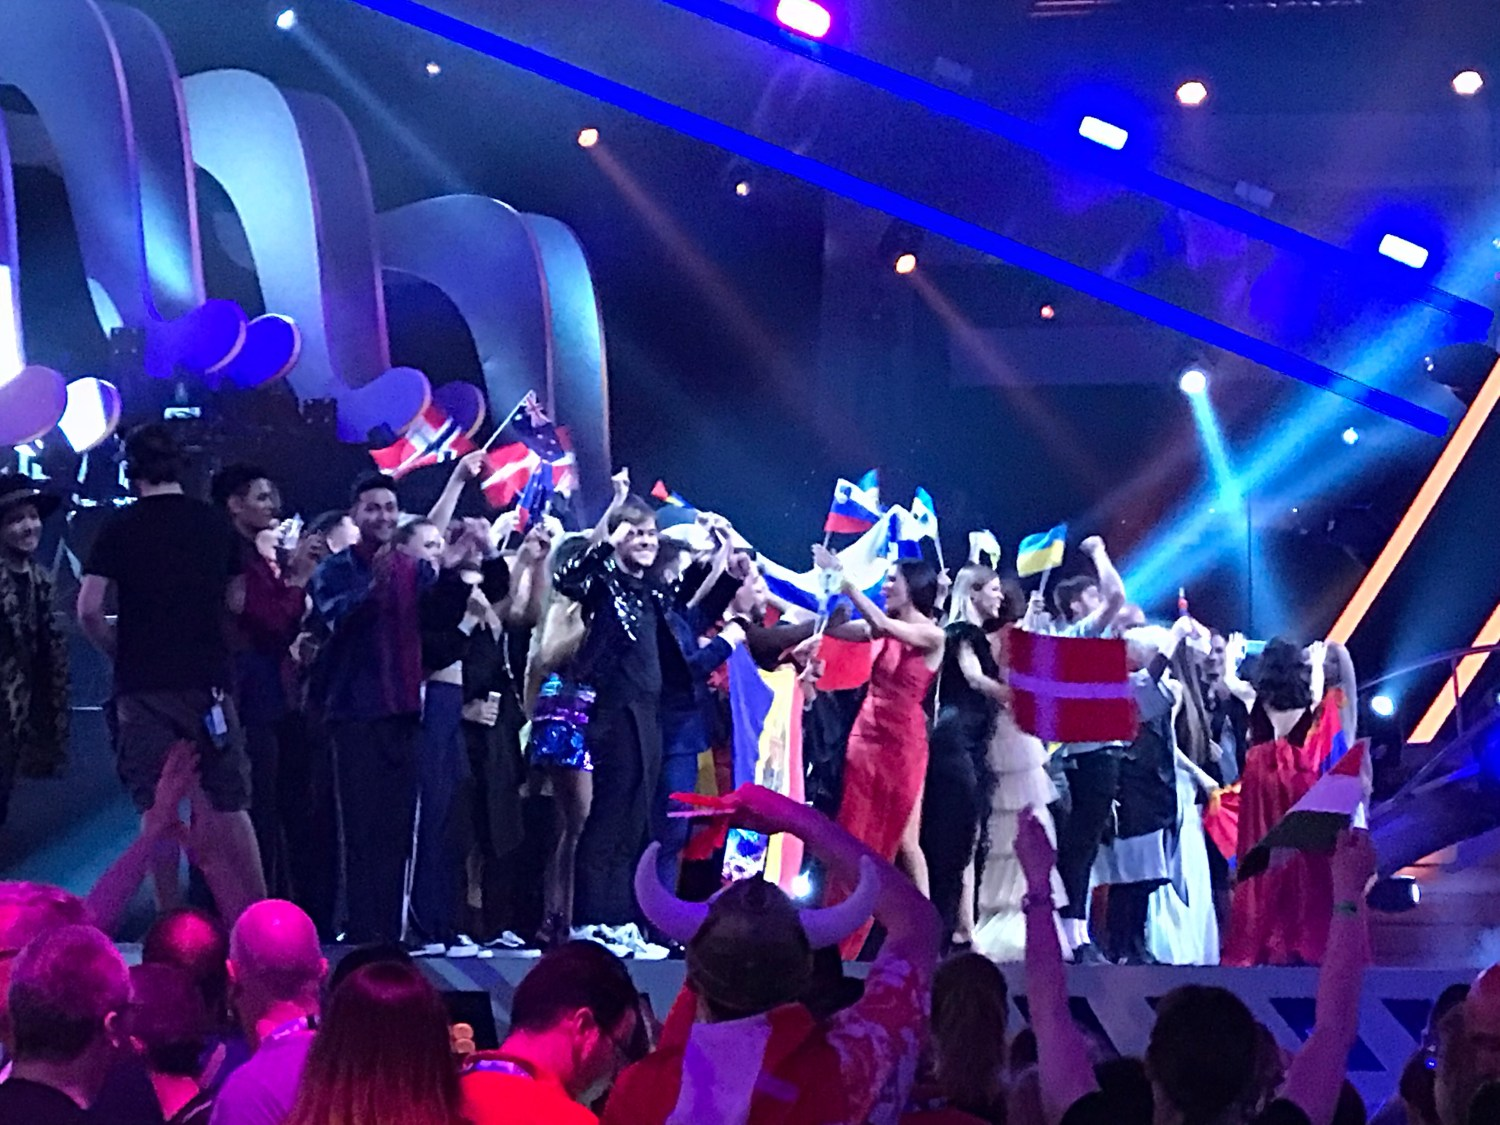 Qualifiers of the second semi final at Eurovision 2018